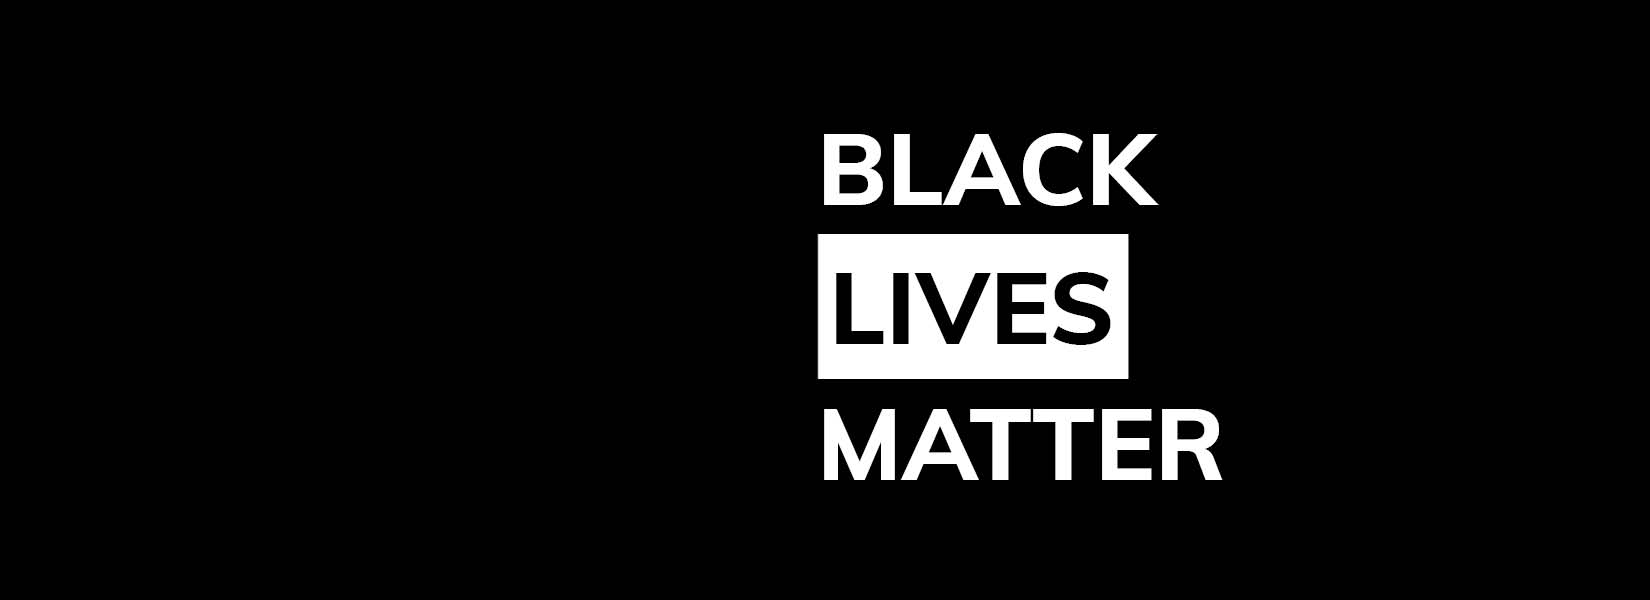 Black lives matter homepage